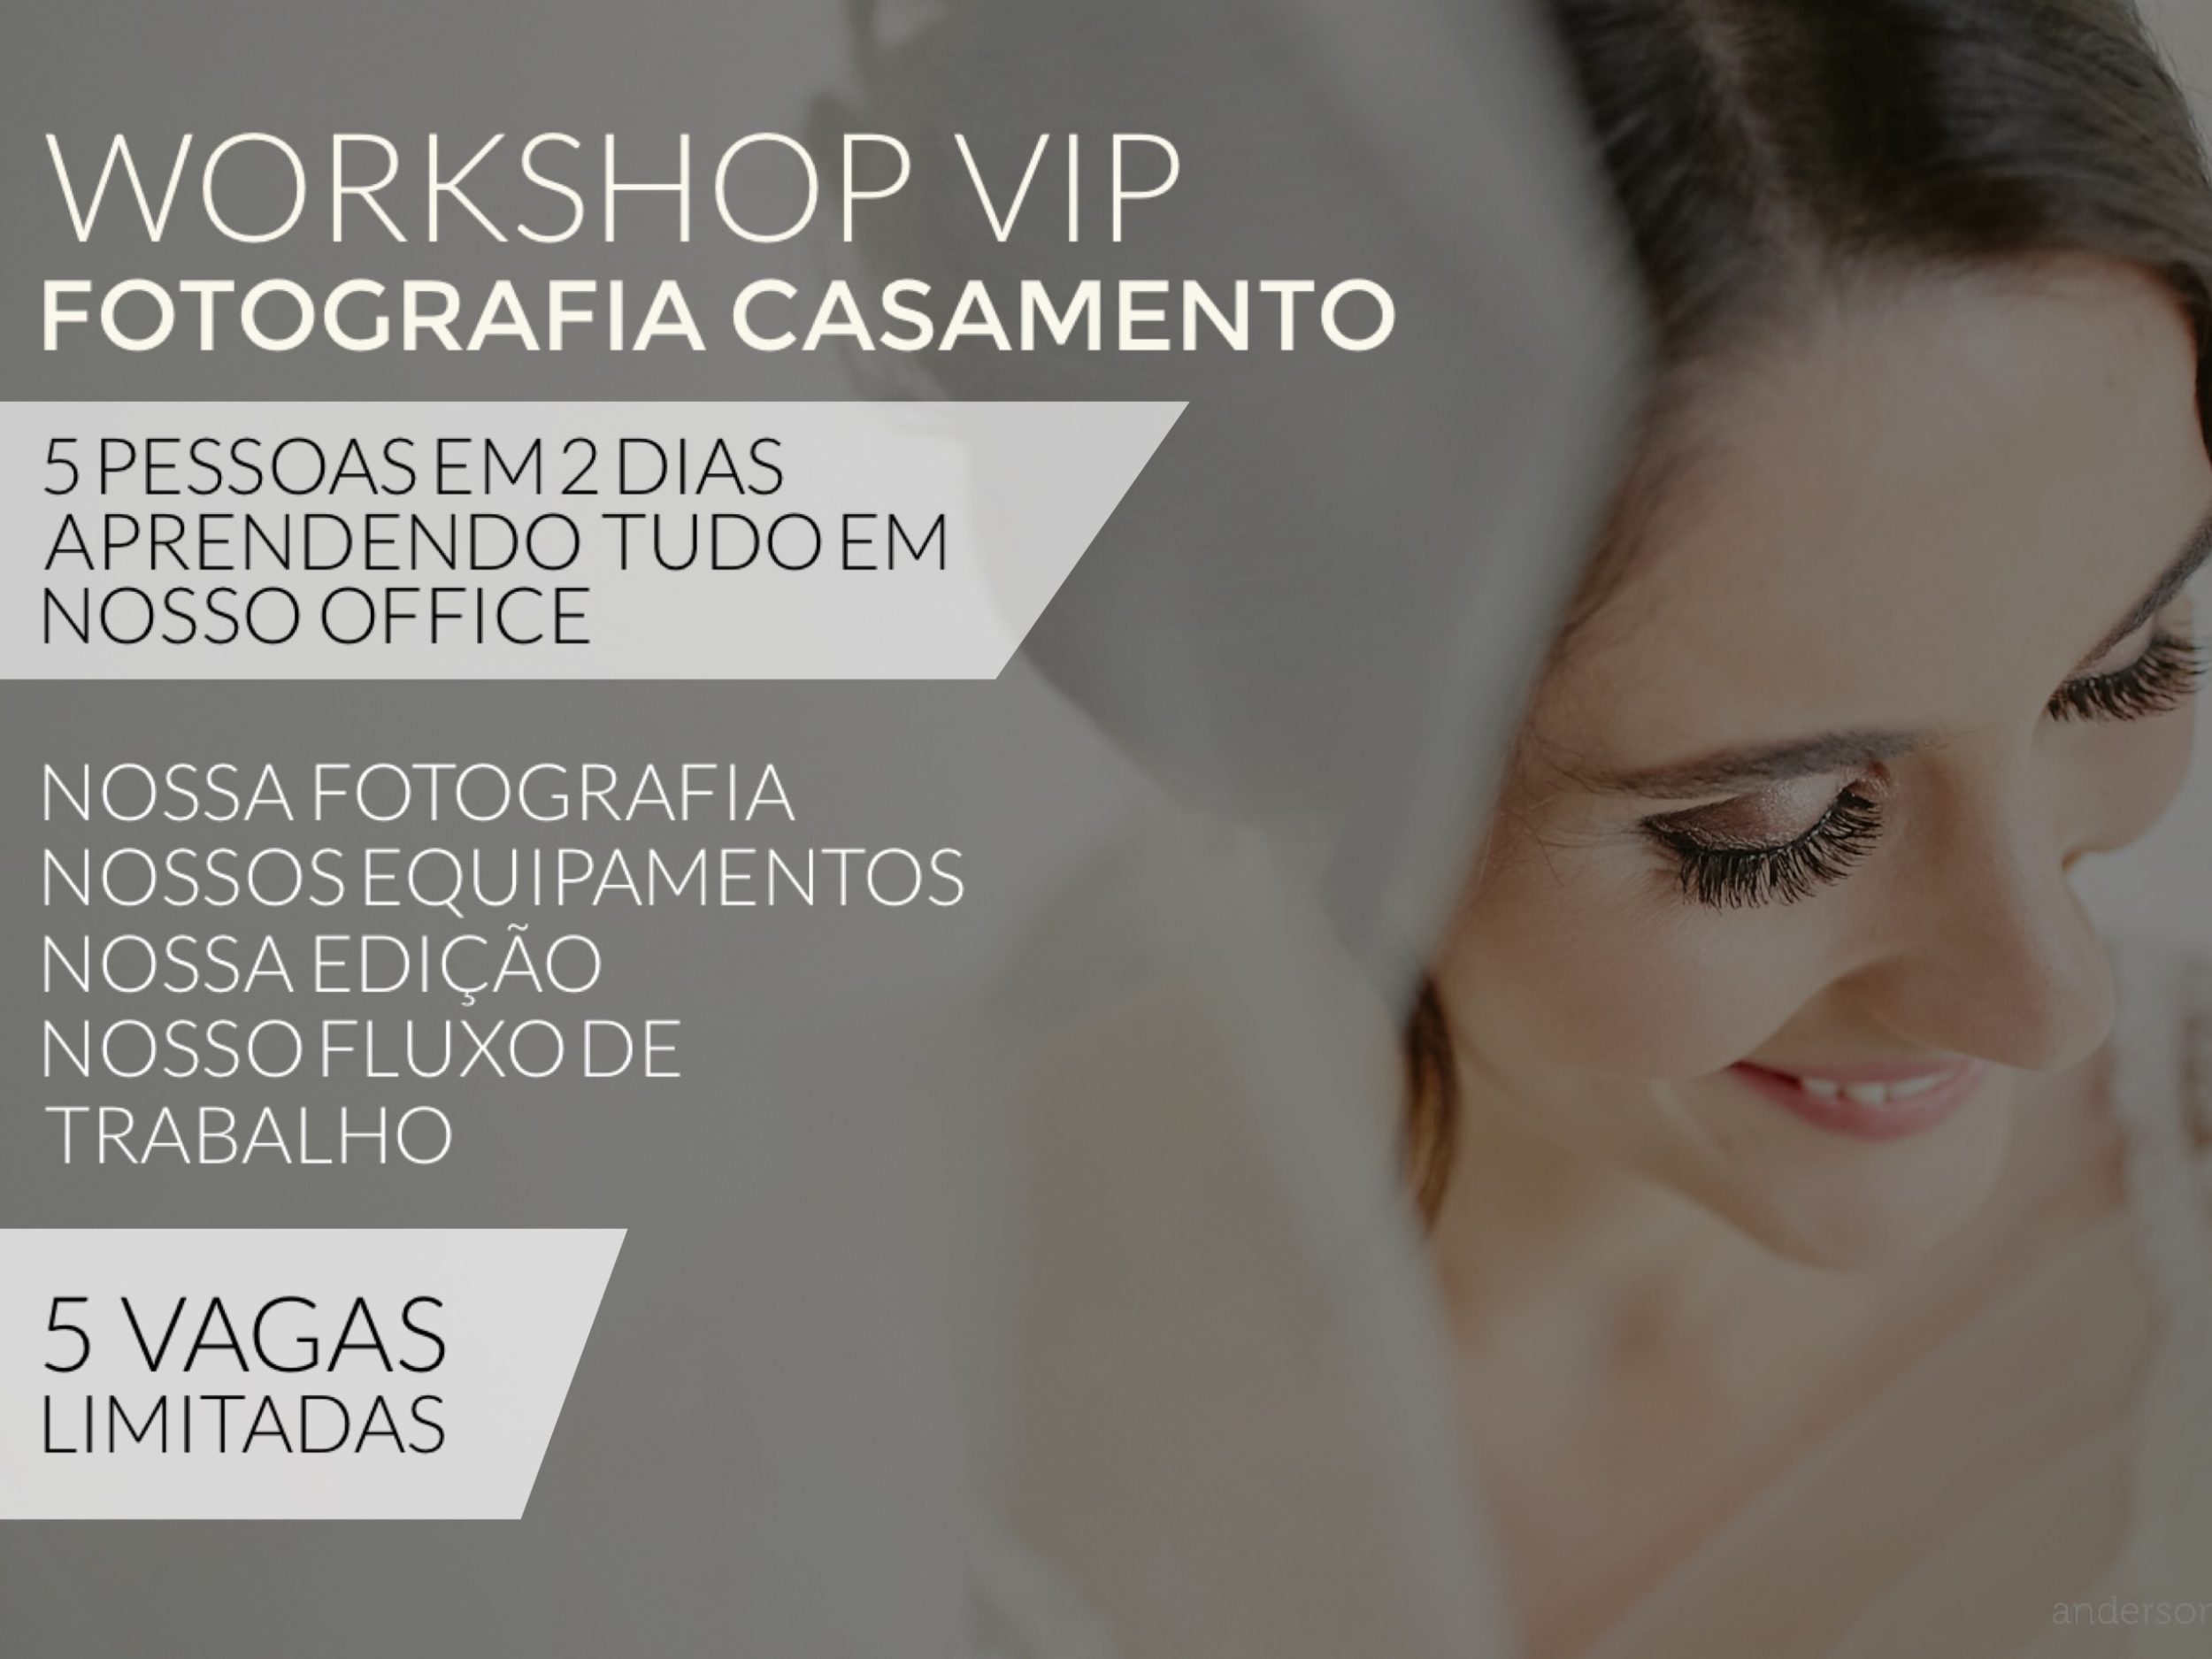 WORKSHOP VIP 2016